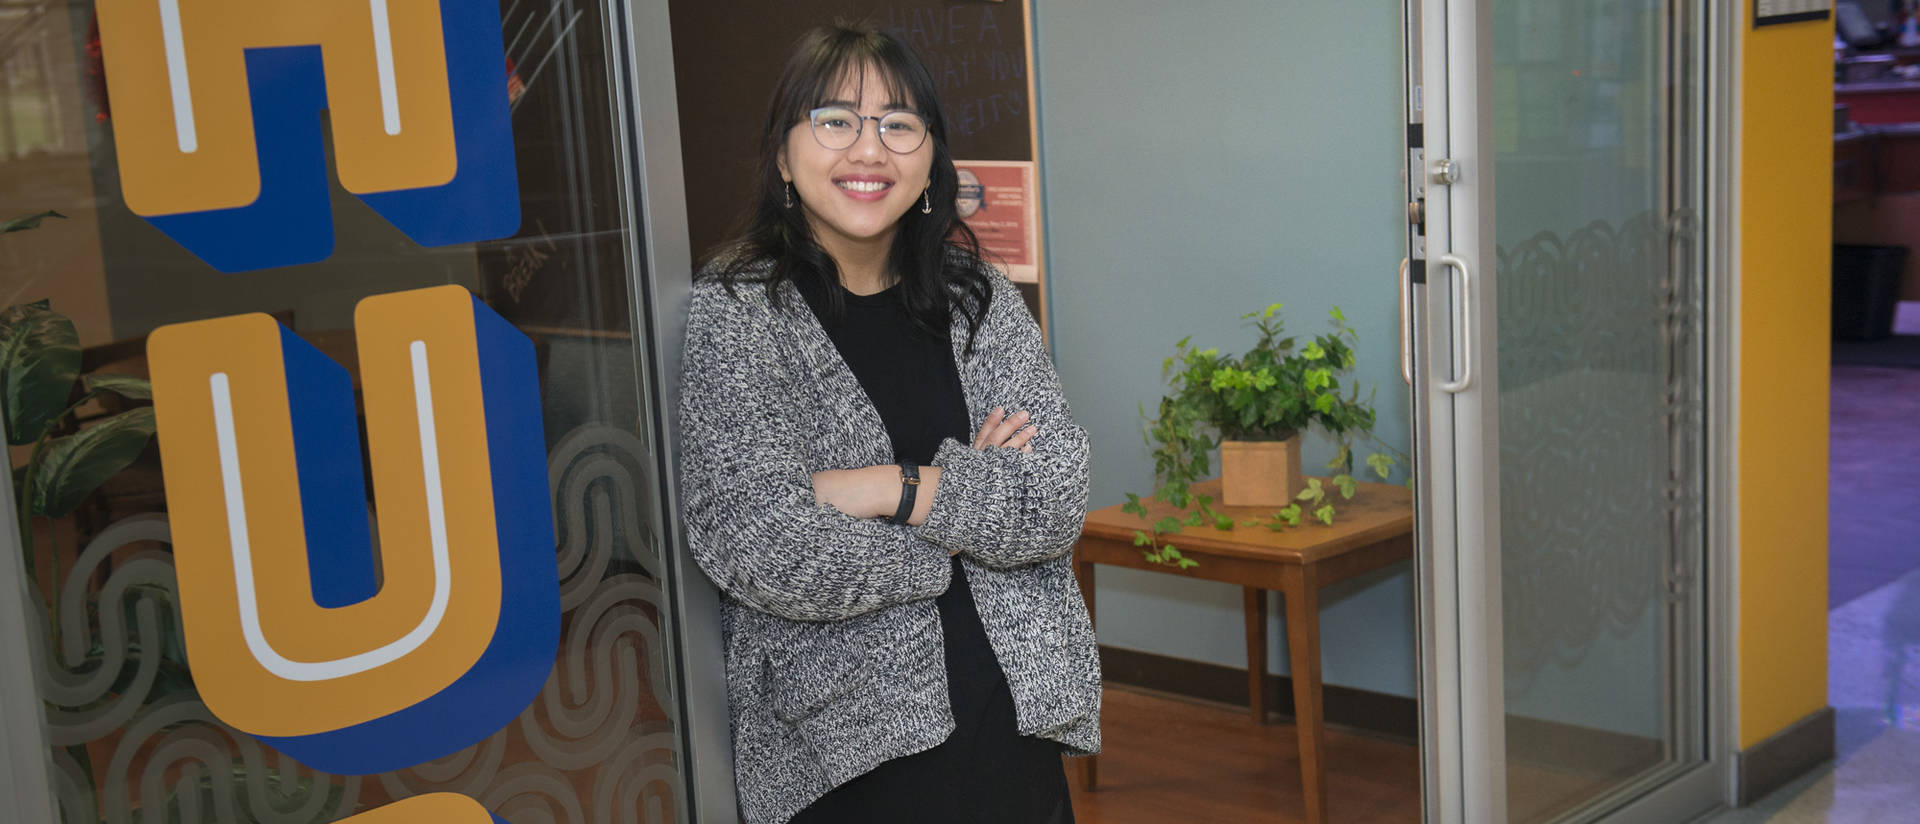 Helping to create the Hub, a space where Blugolds can find student resources, is among Amanda Thao's accomplishments.